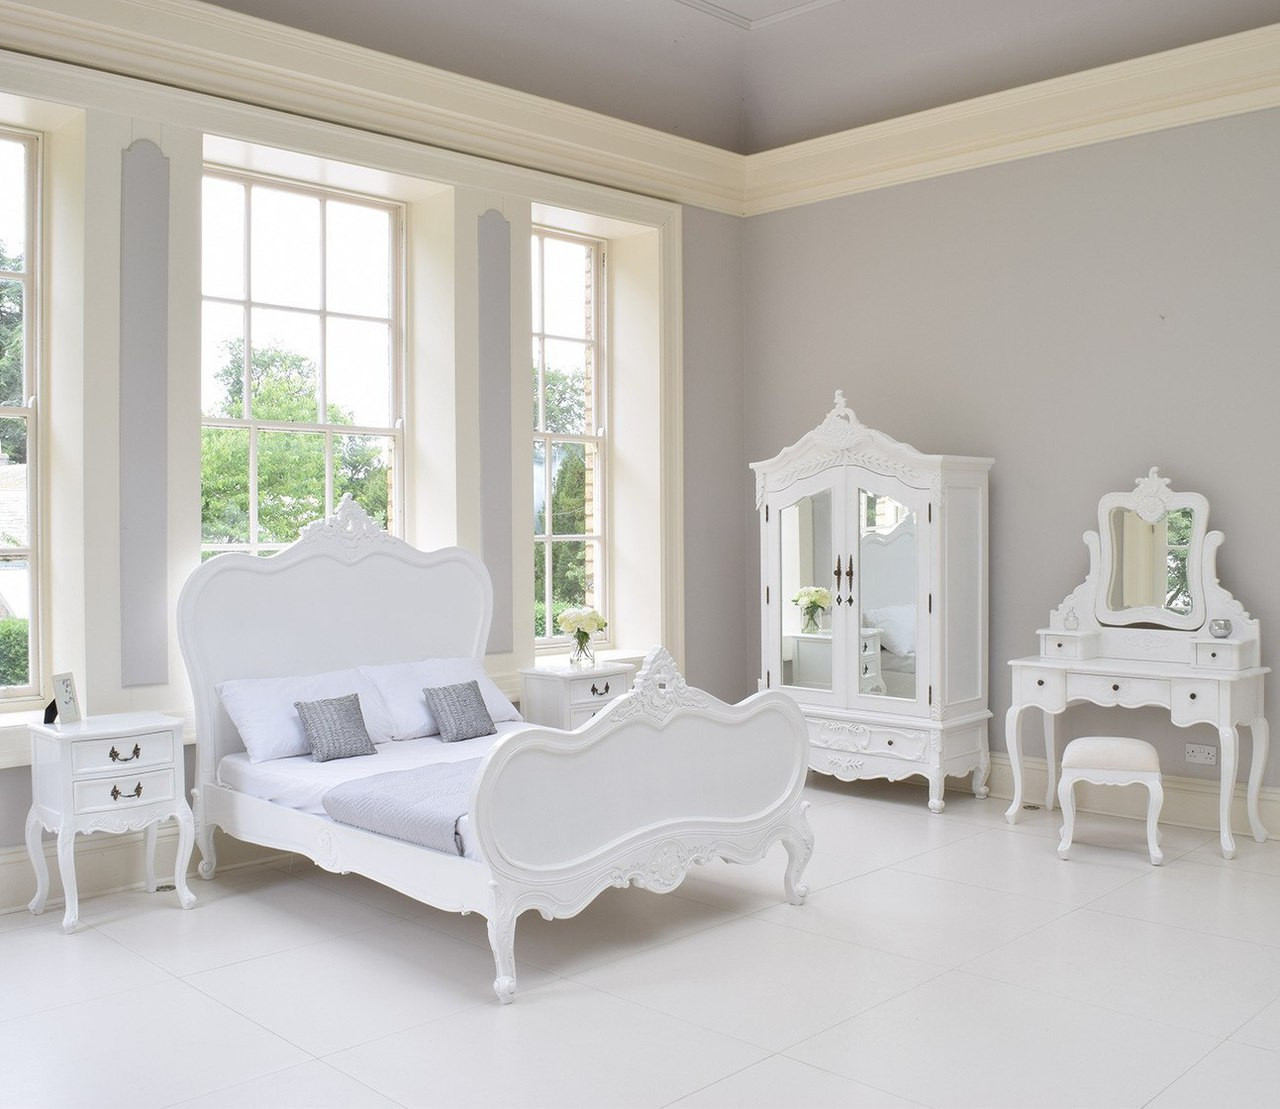 French bedroom sets - French style bedroom furniture sets ...